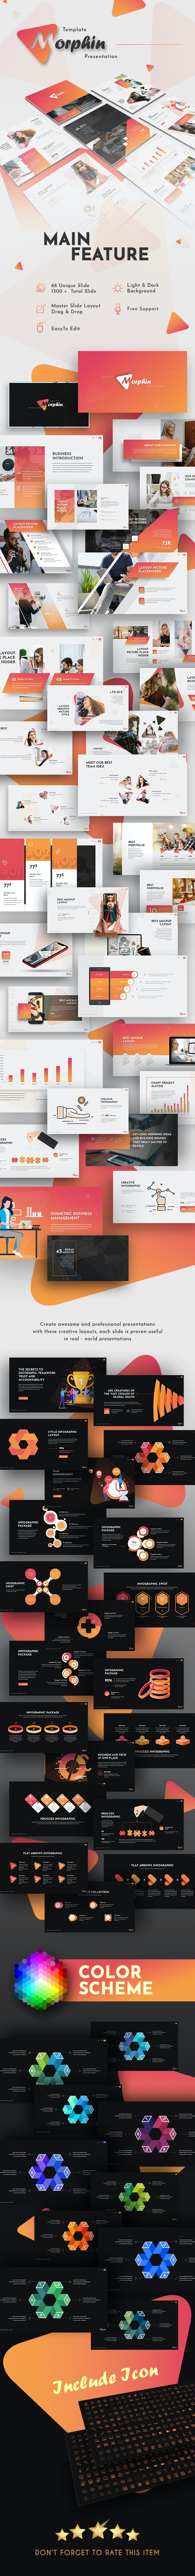 Morph In Multipurpose Presentation Template - Business PowerPoint Templates